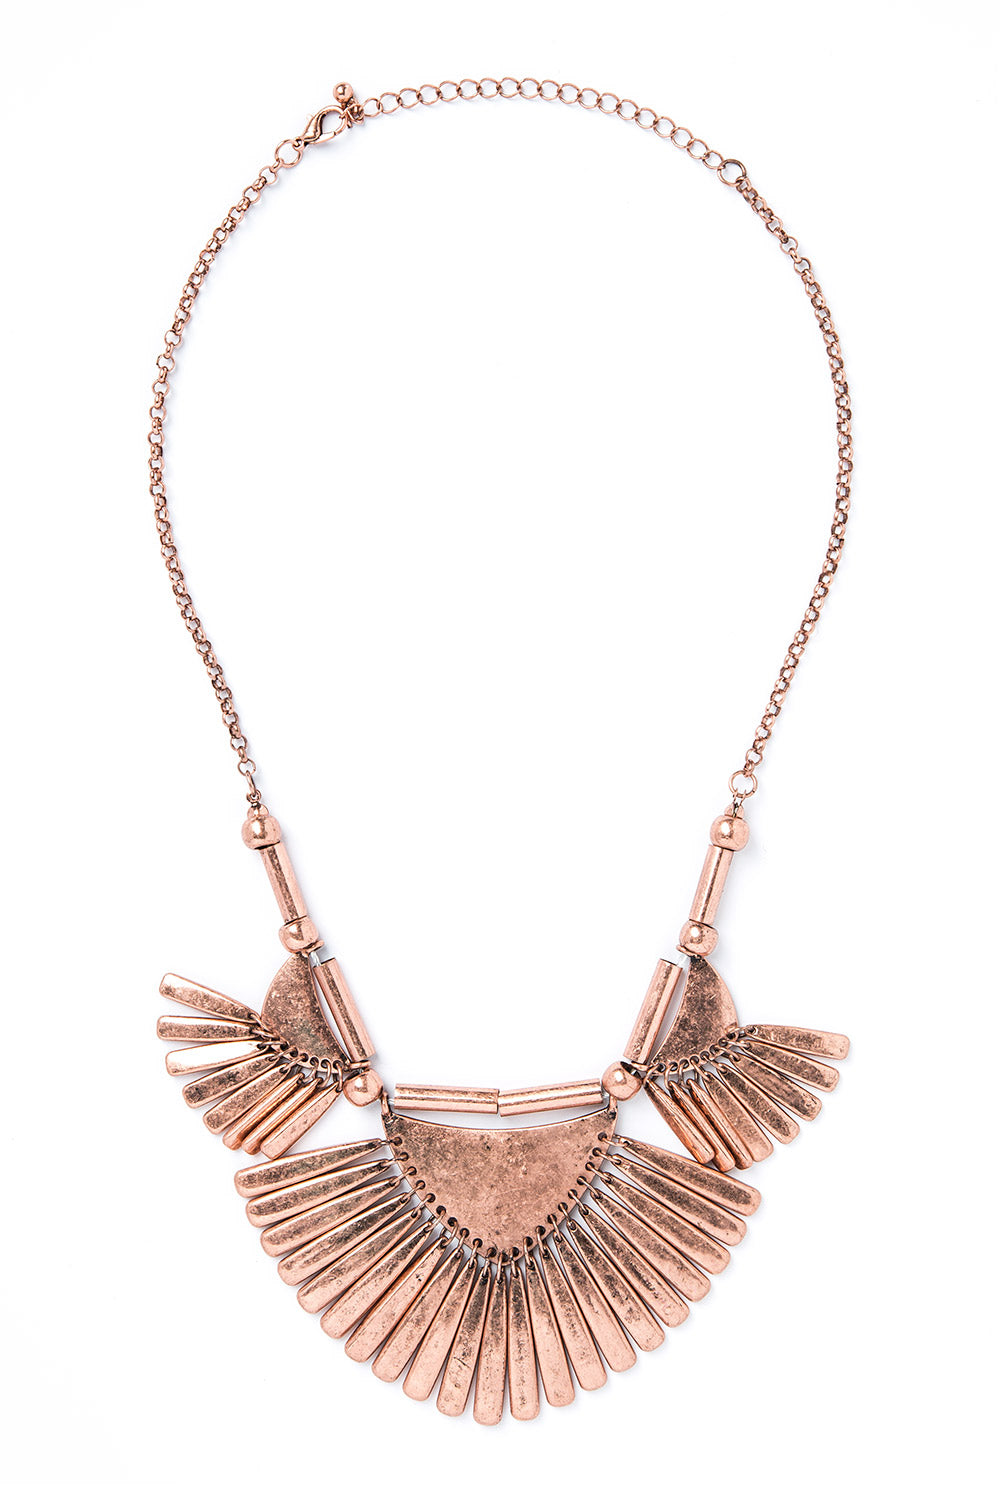 Type 3 Copper Mine Necklace